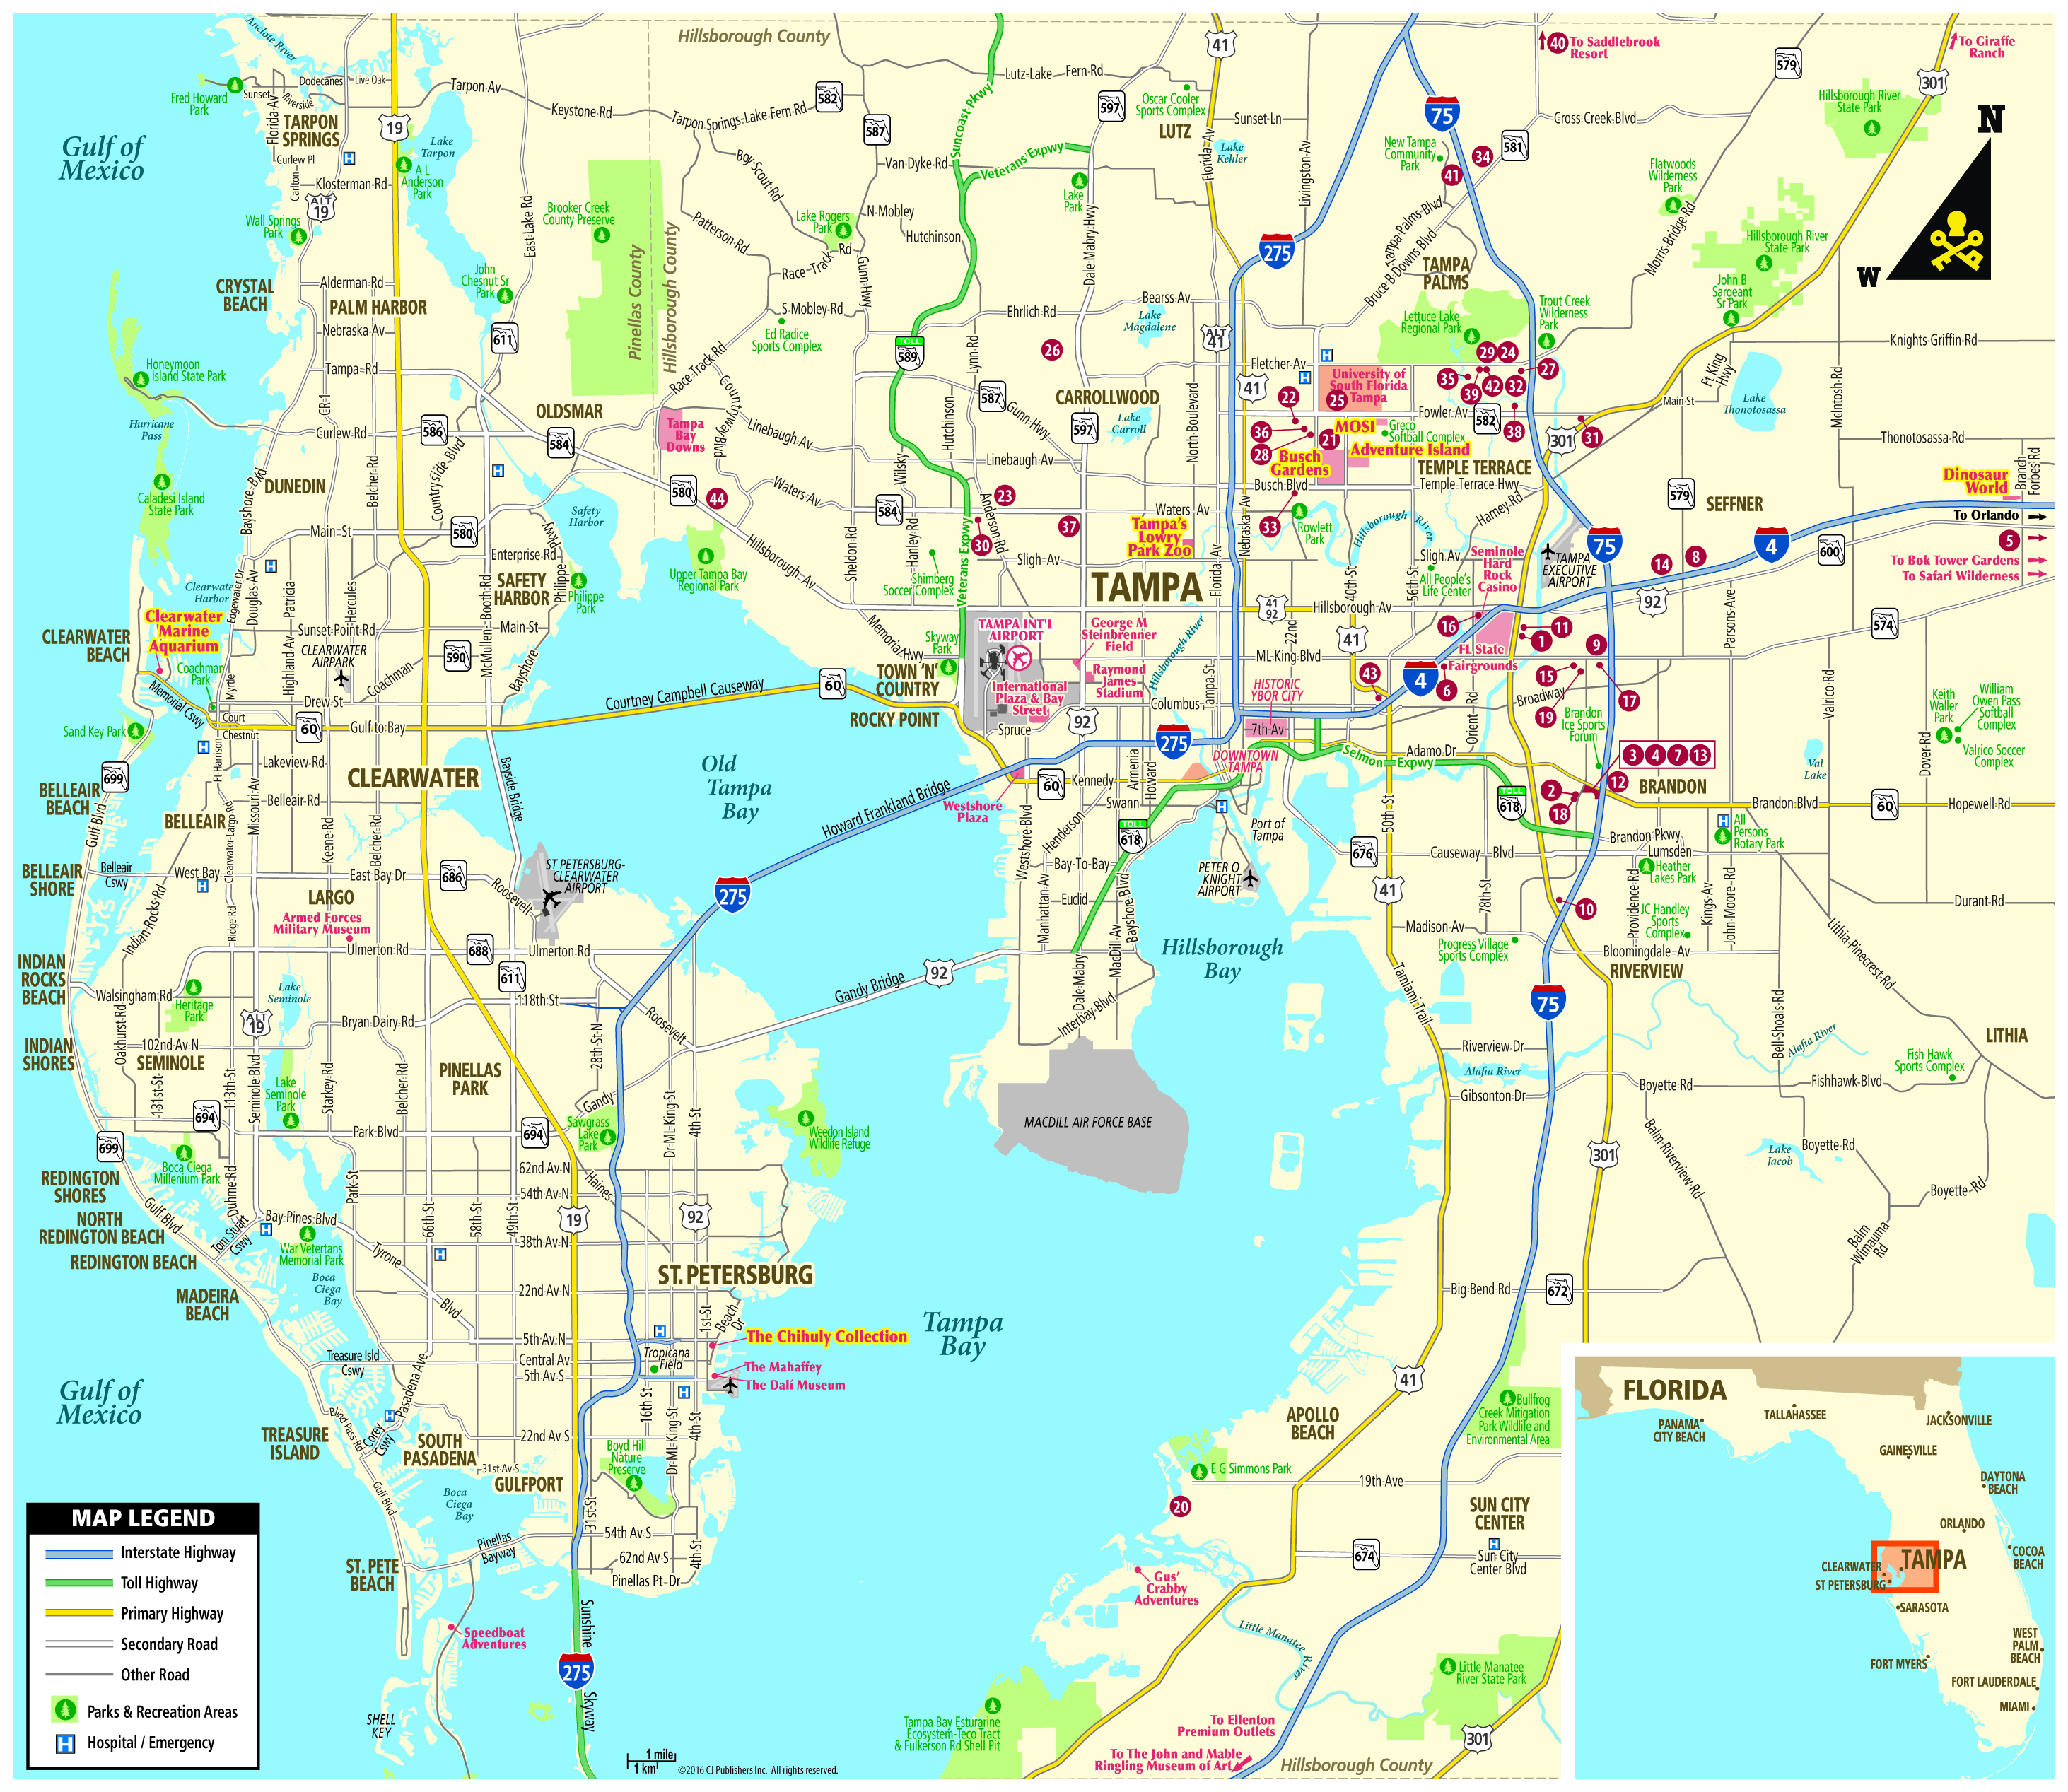 Tampa On Map Of Florida | autobedrijfmaatje on